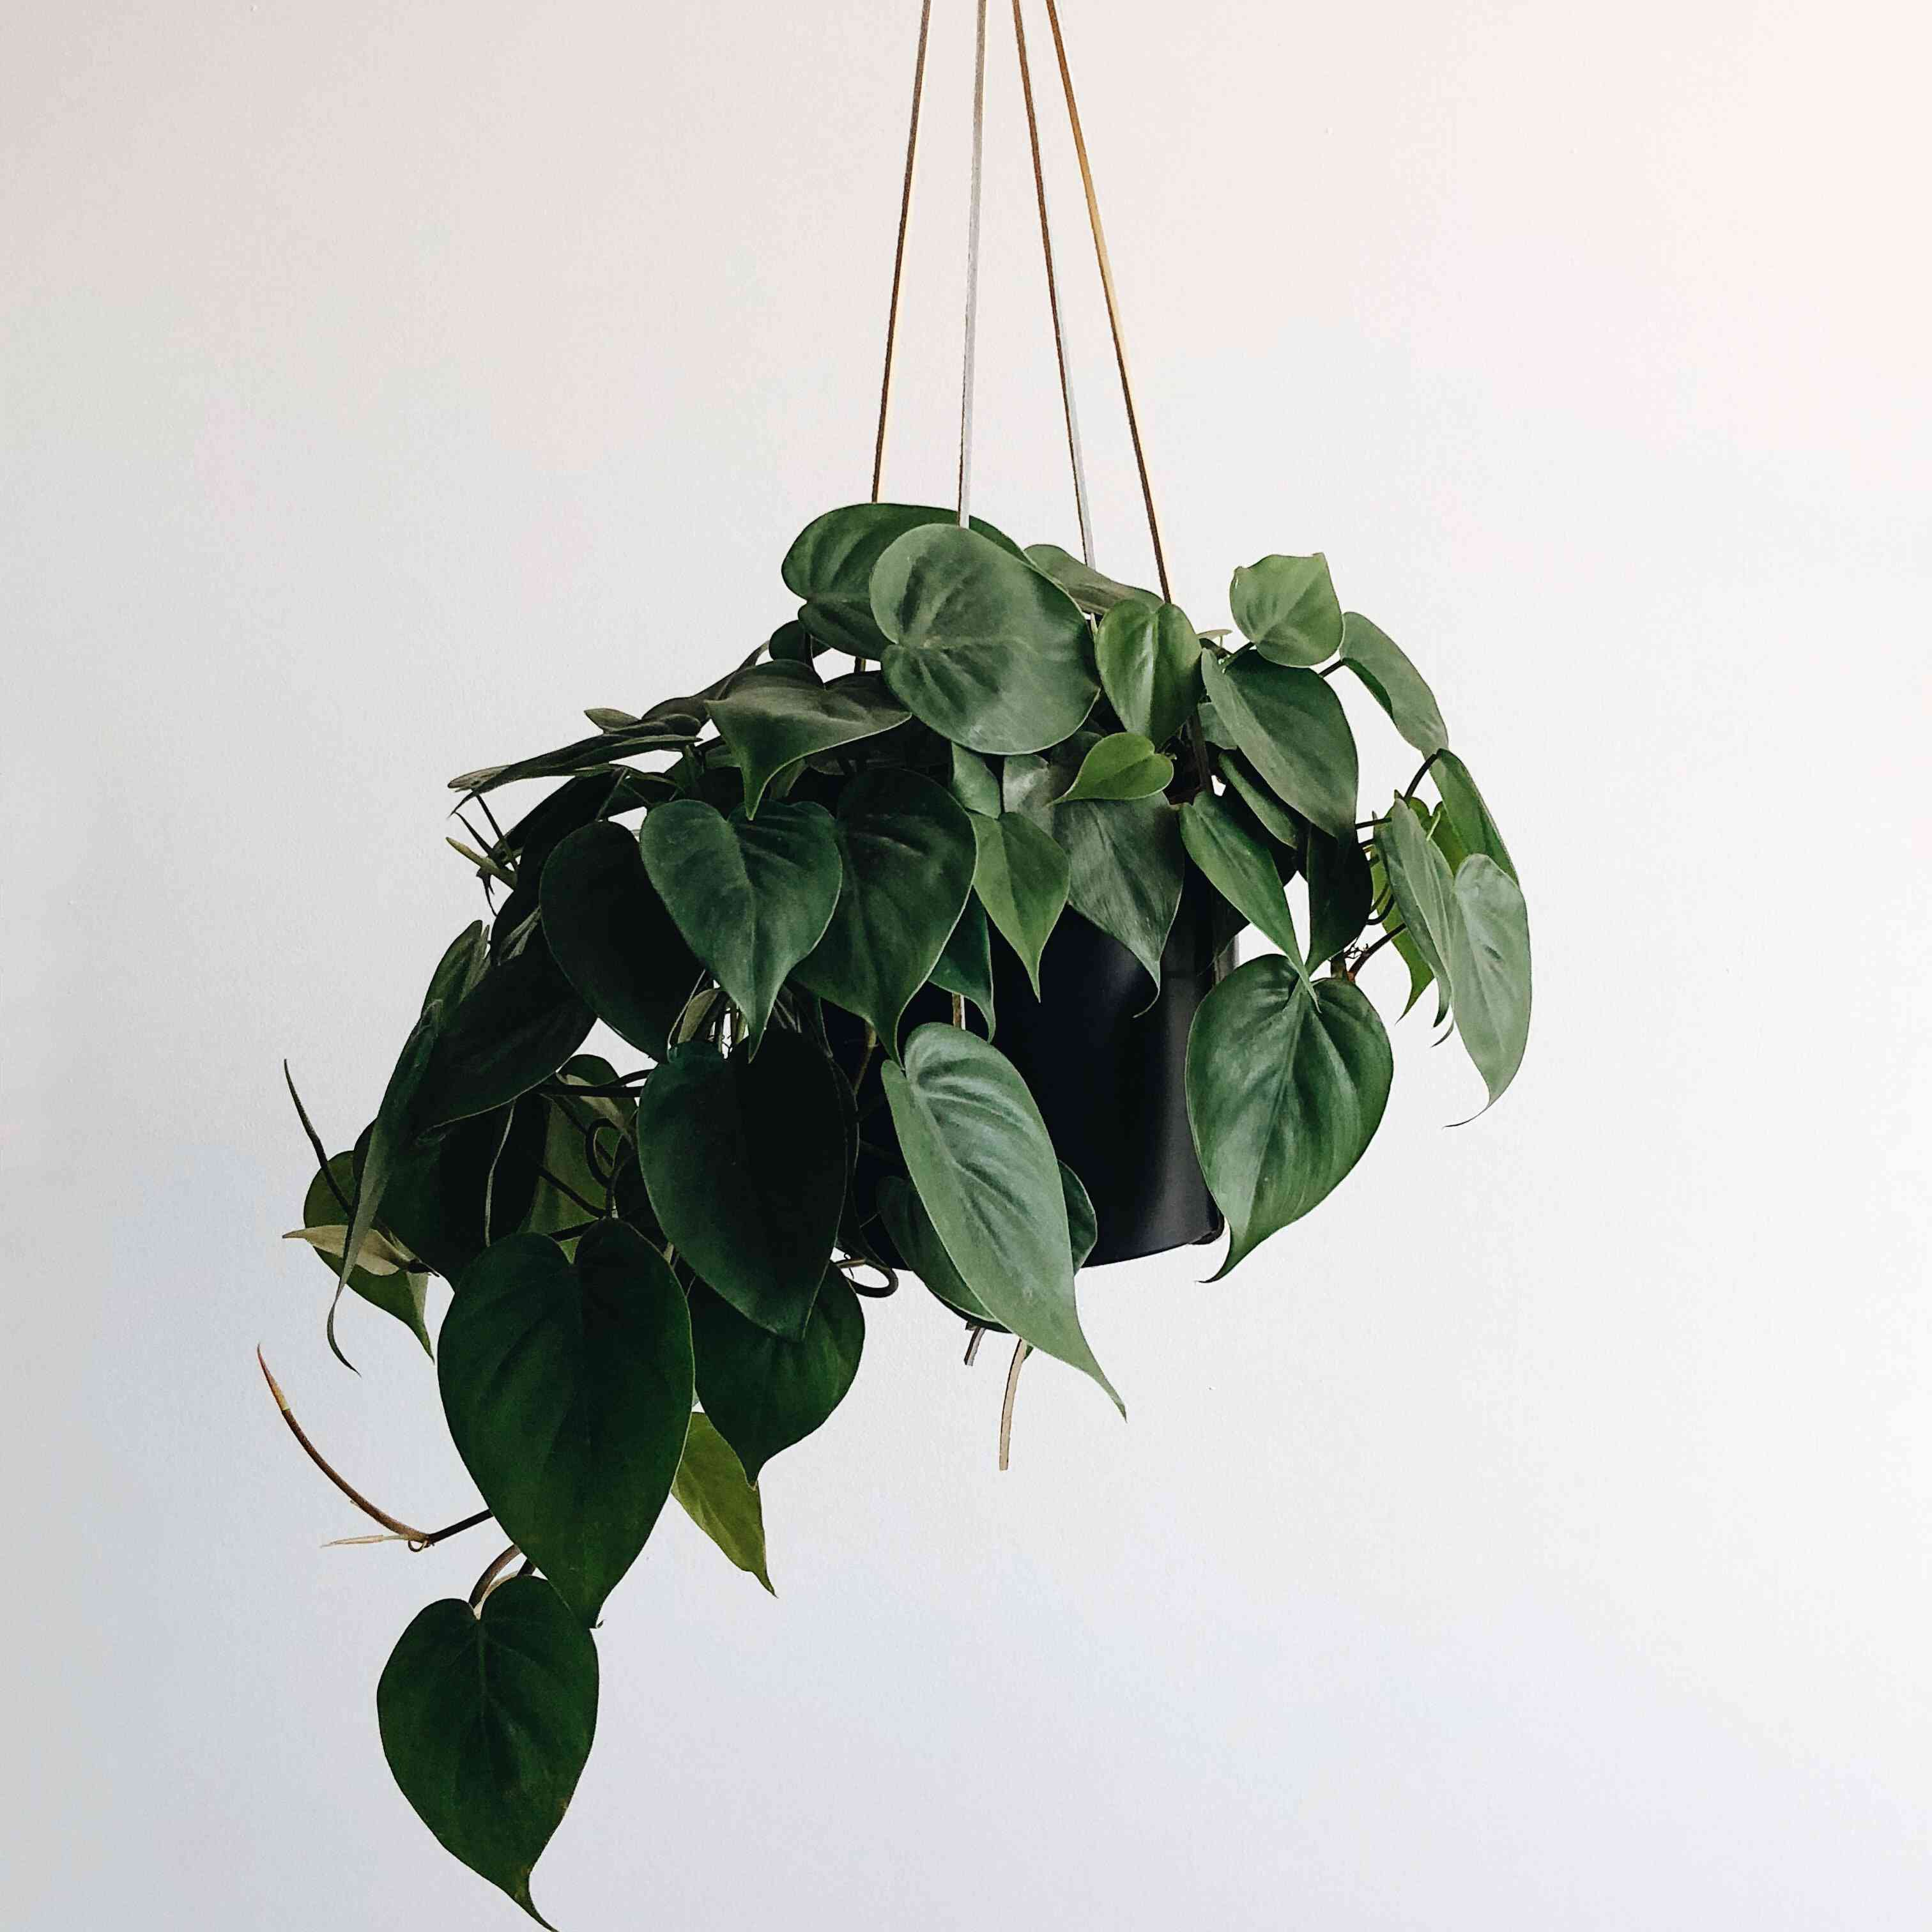 pothos plant hanging in a white room